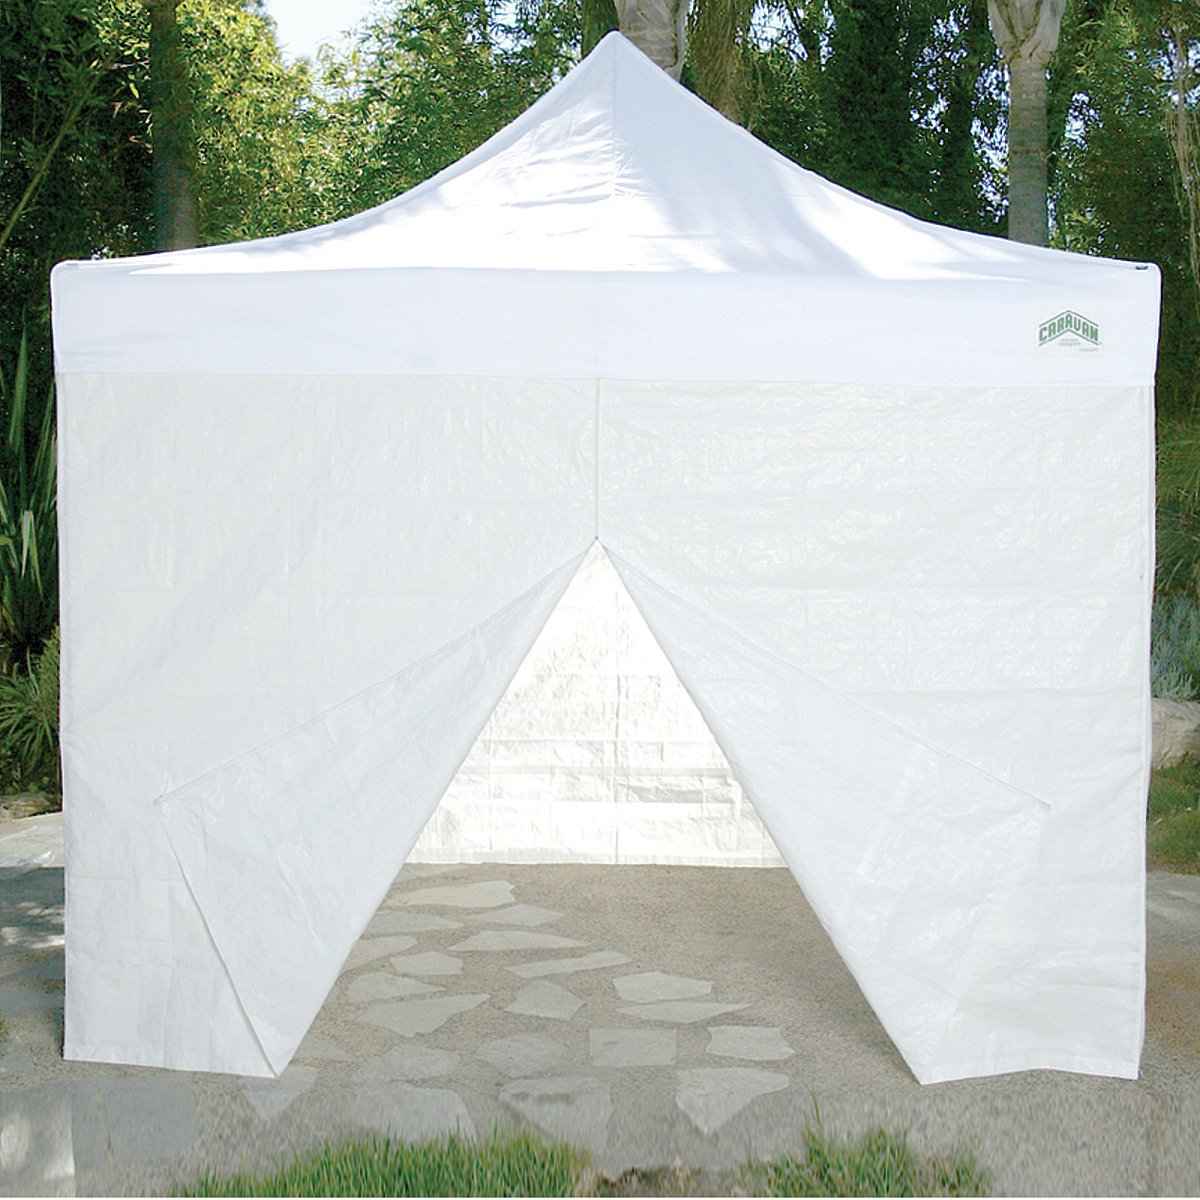 Amazon.com  Caravan Canopy 10-Feet Canopy Sidewall Kit for Caravan Display Shade and Aluma Shade Models White  Outdoor Canopies  Garden u0026 Outdoor : canopy 10x10 with sidewalls - memphite.com